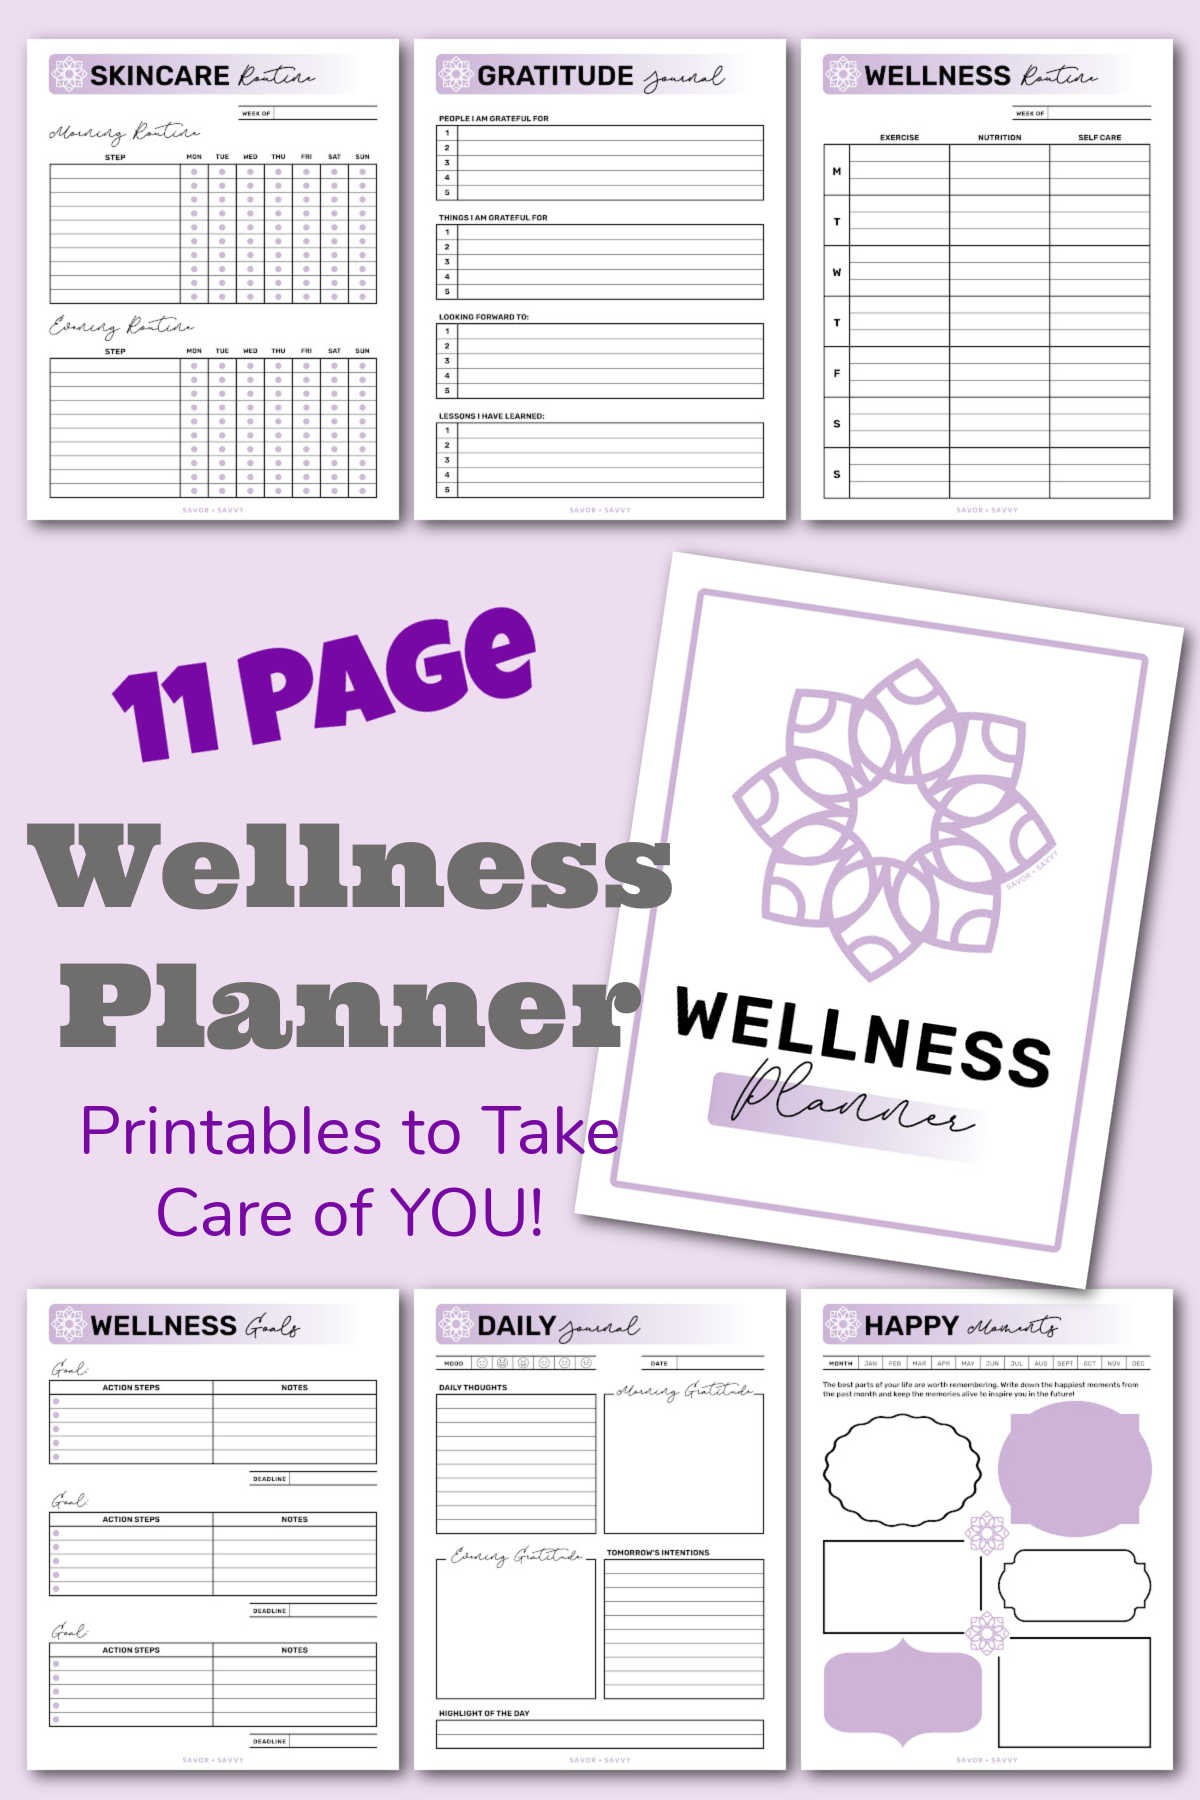 several pages from the printable binder on self care and wellness on a light purple background.